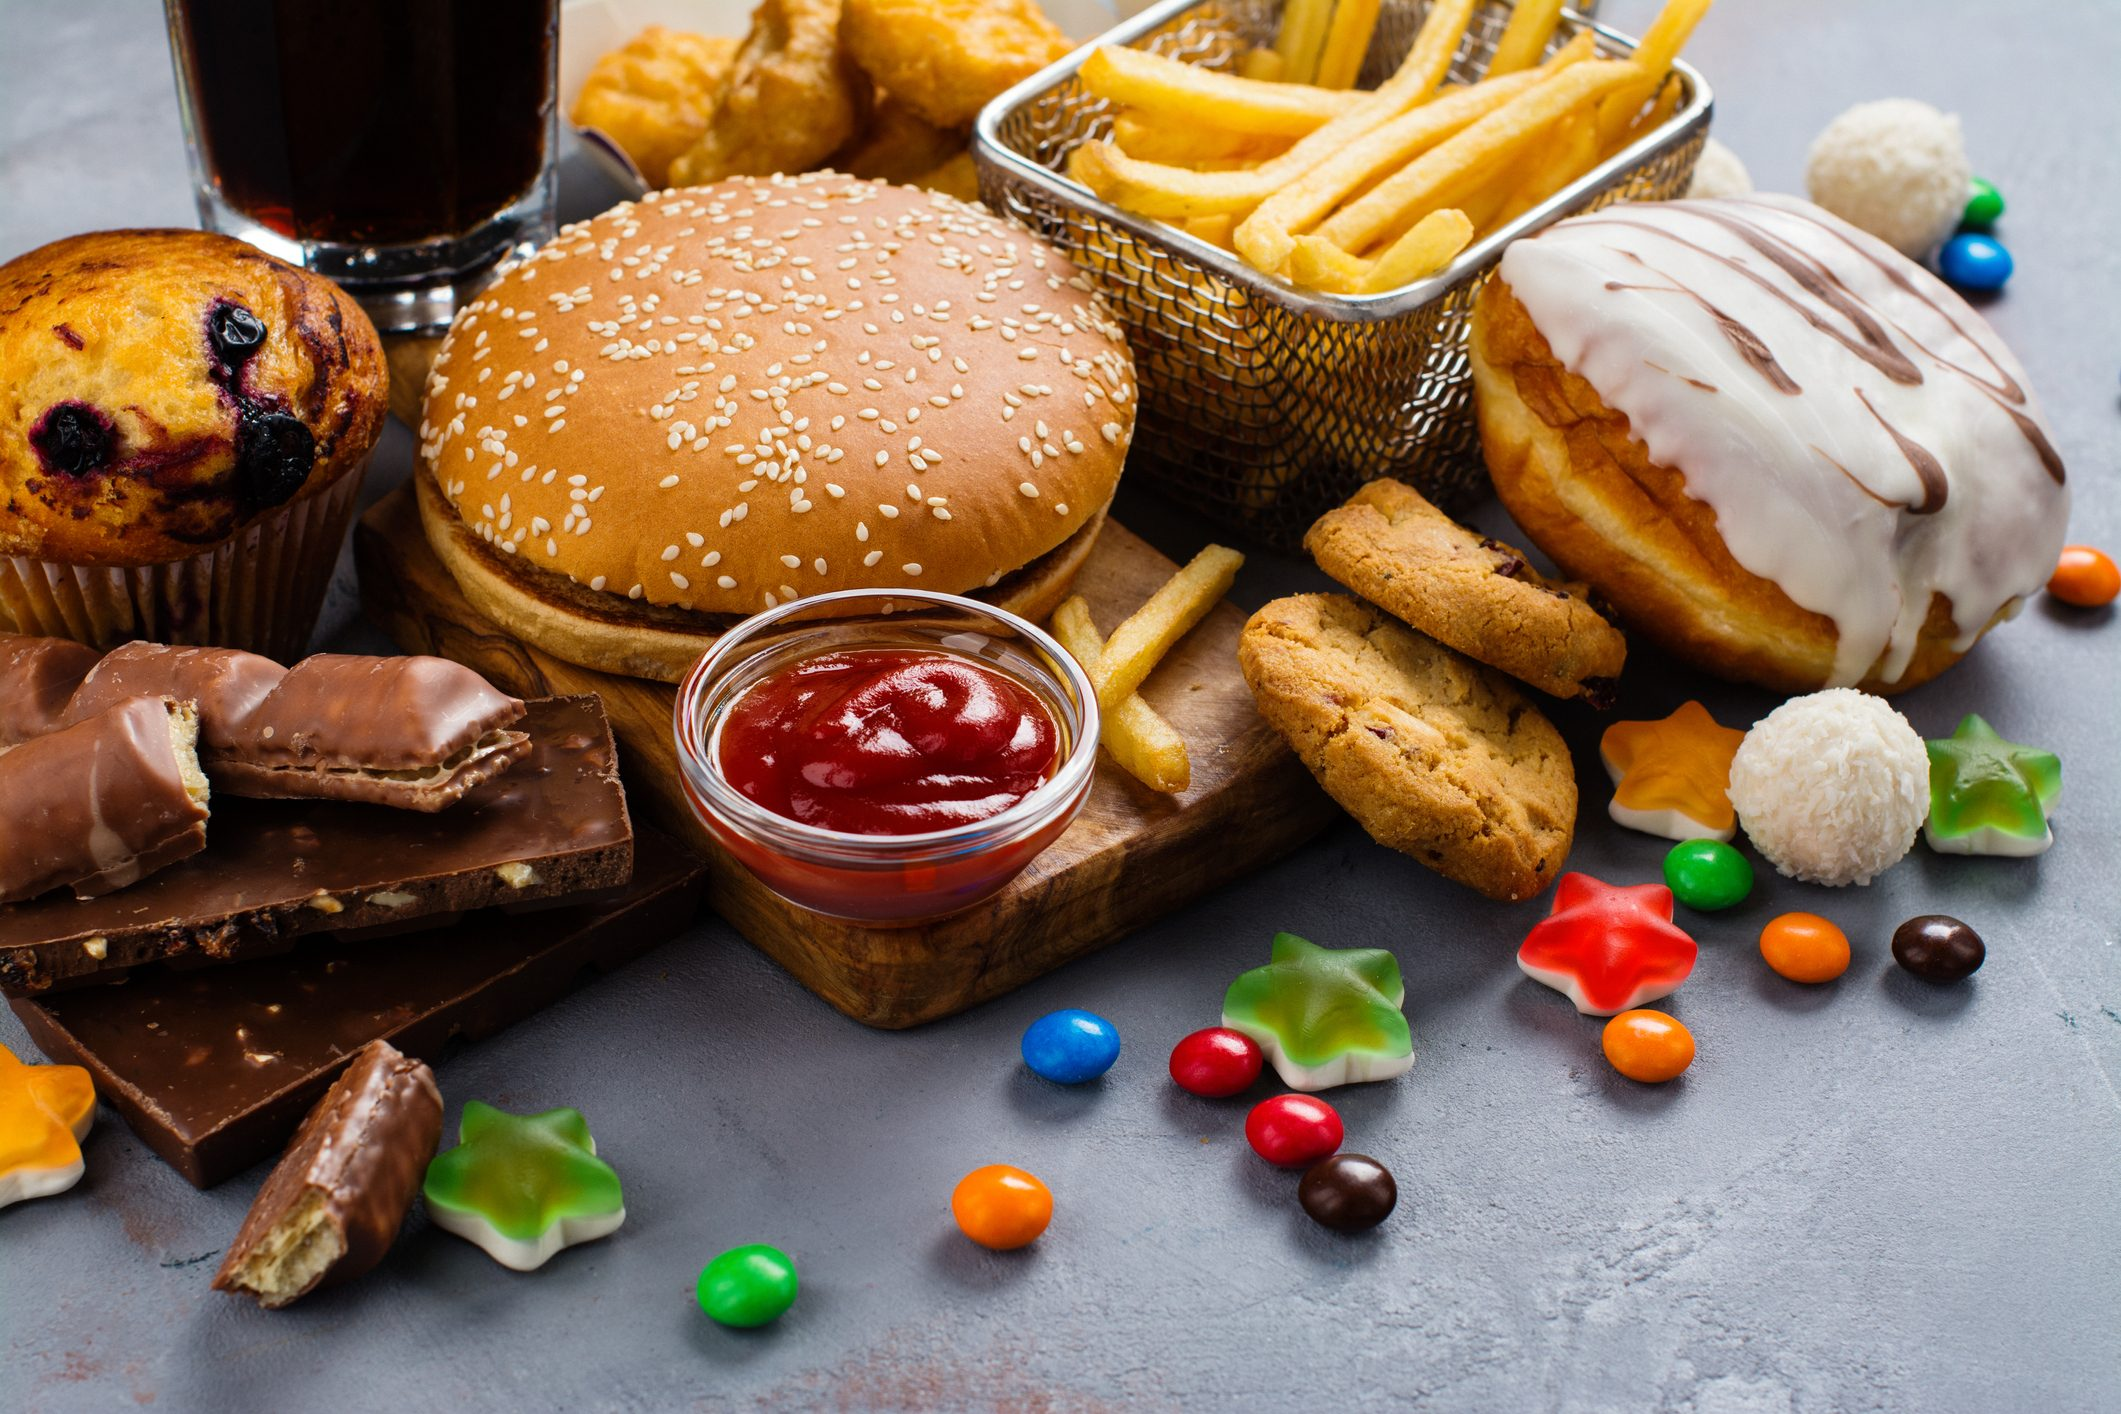 10 highly fattening foods | Cookist.com